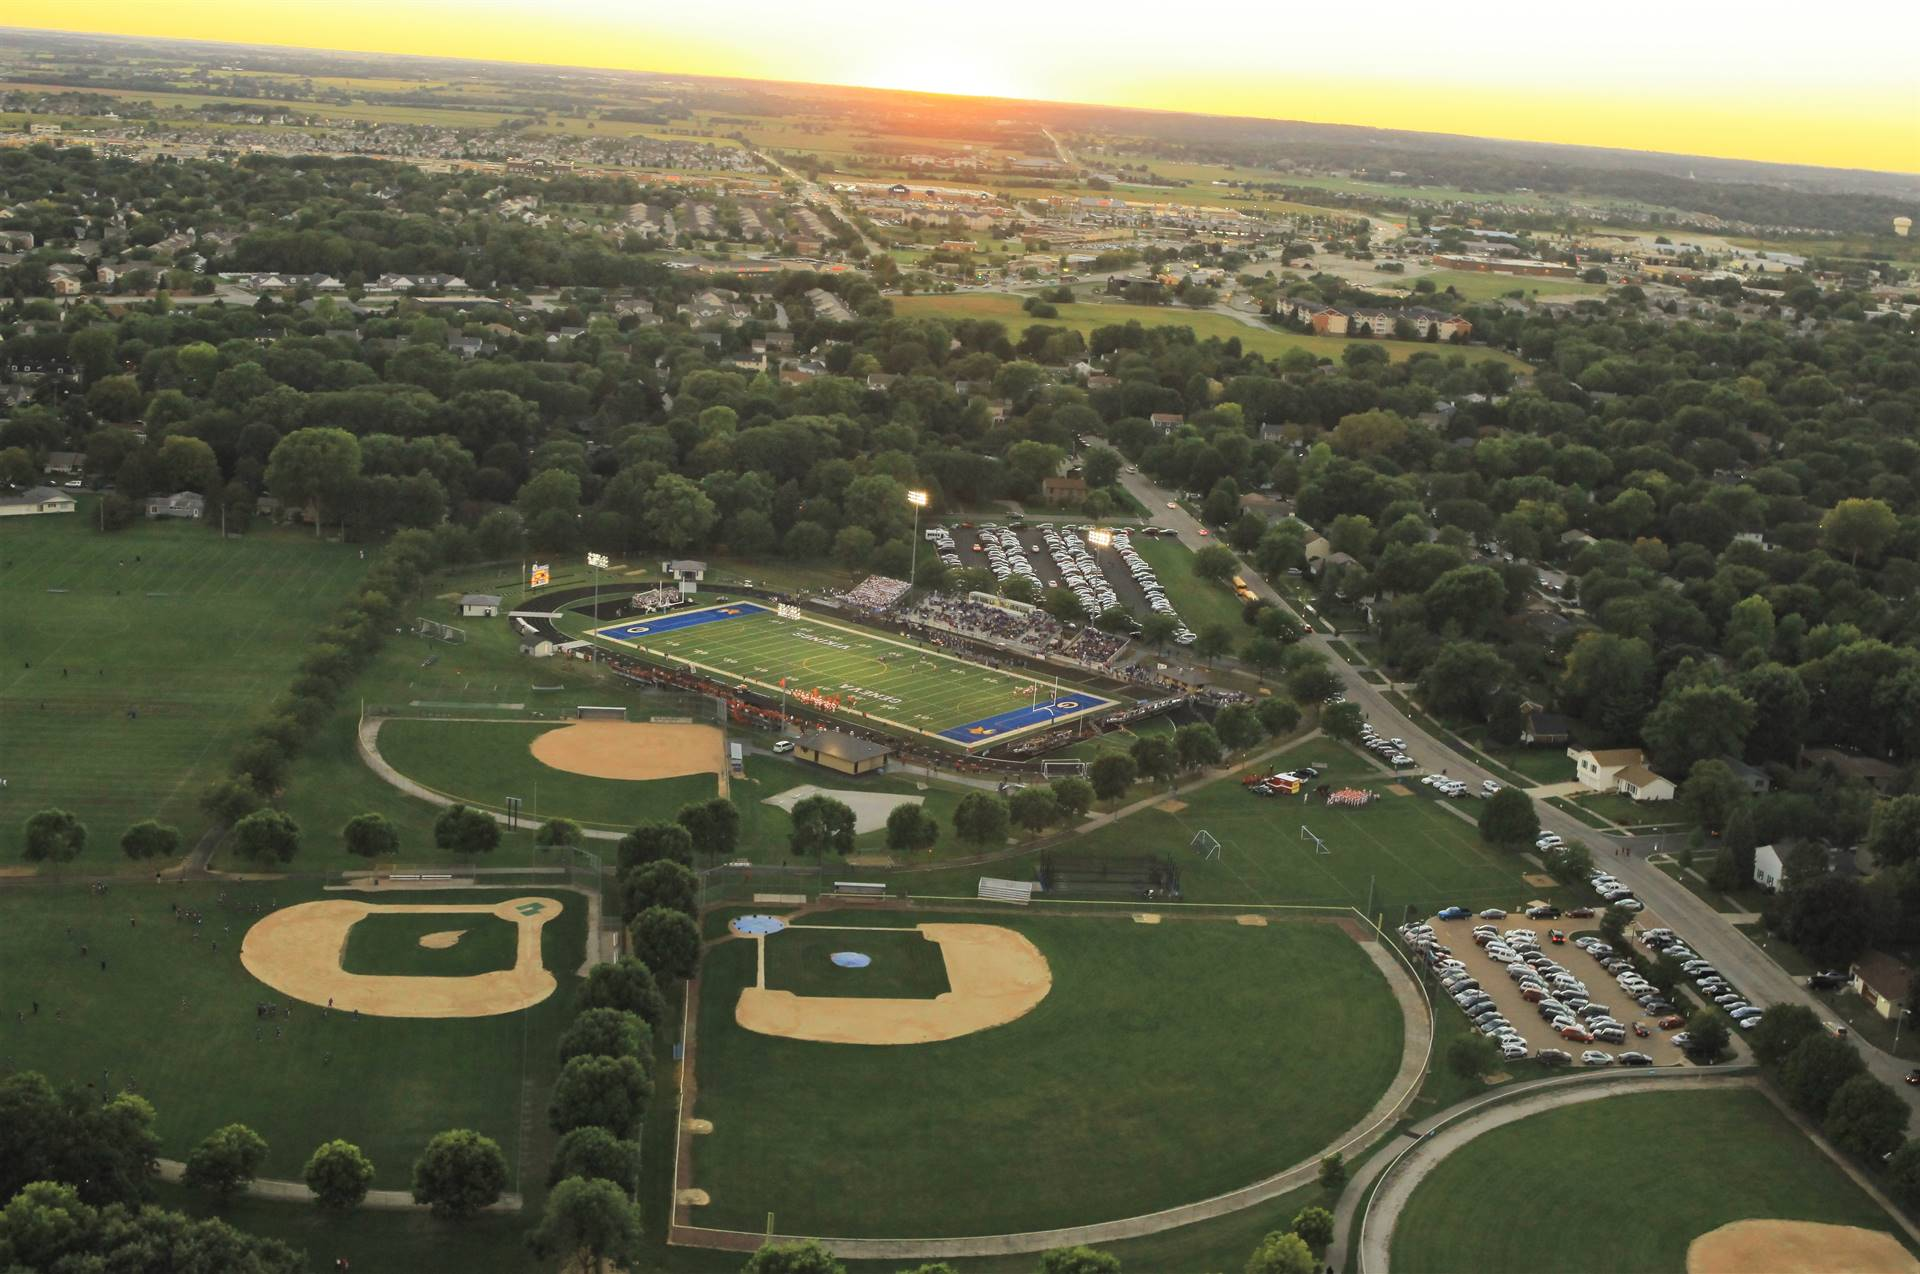 Aerial Baseball and Softball FIelds